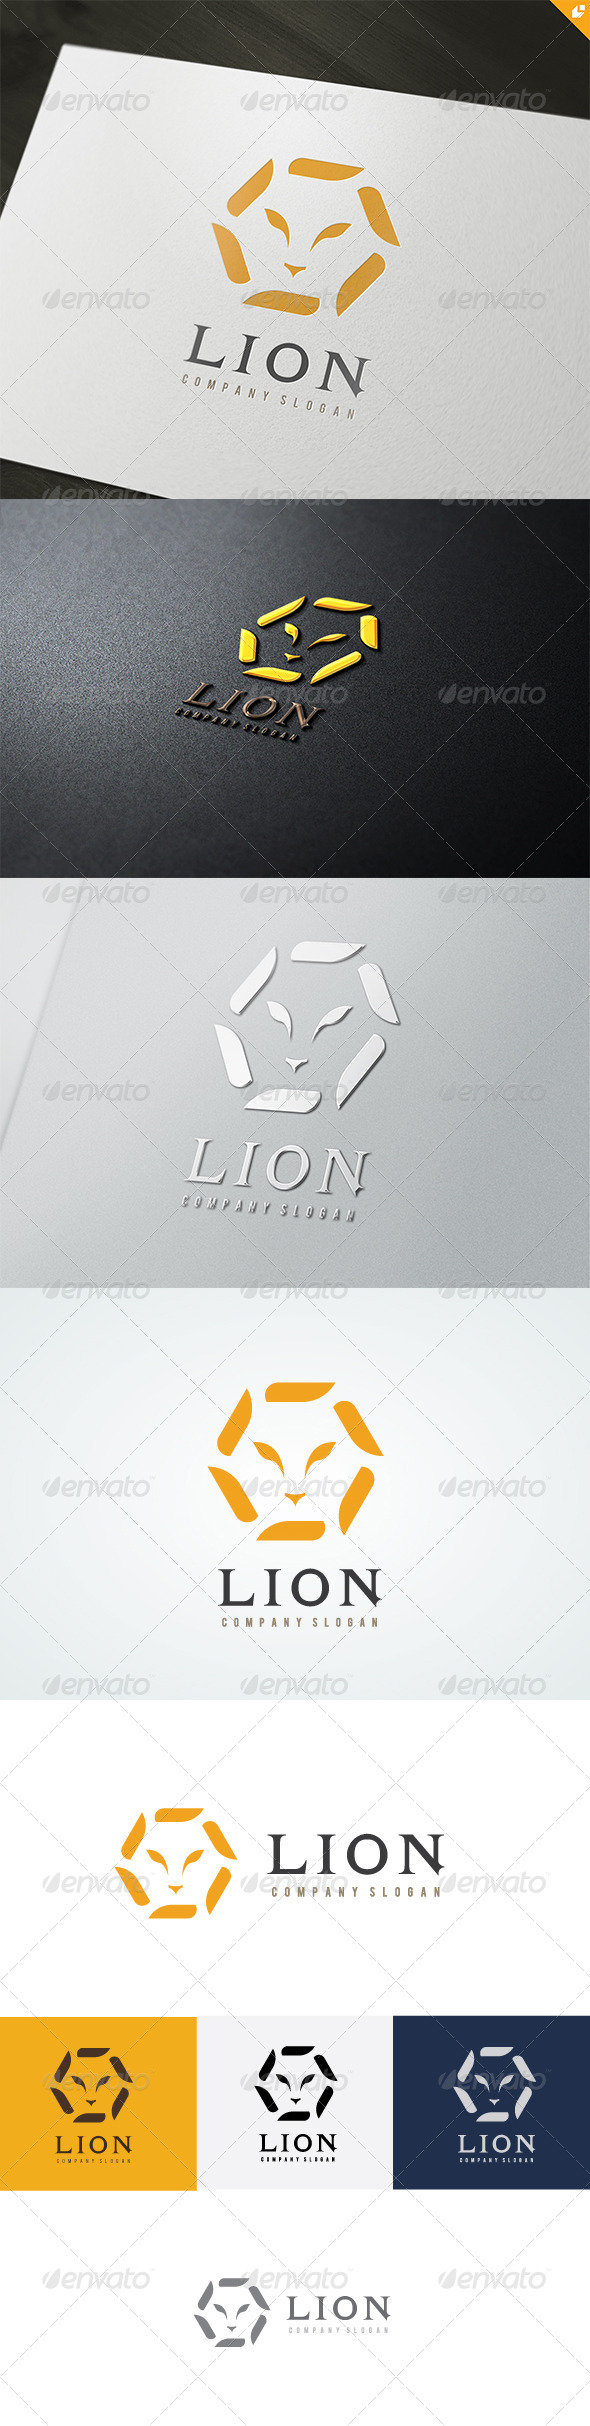 GraphicRiver Lion Company Logo 4723423